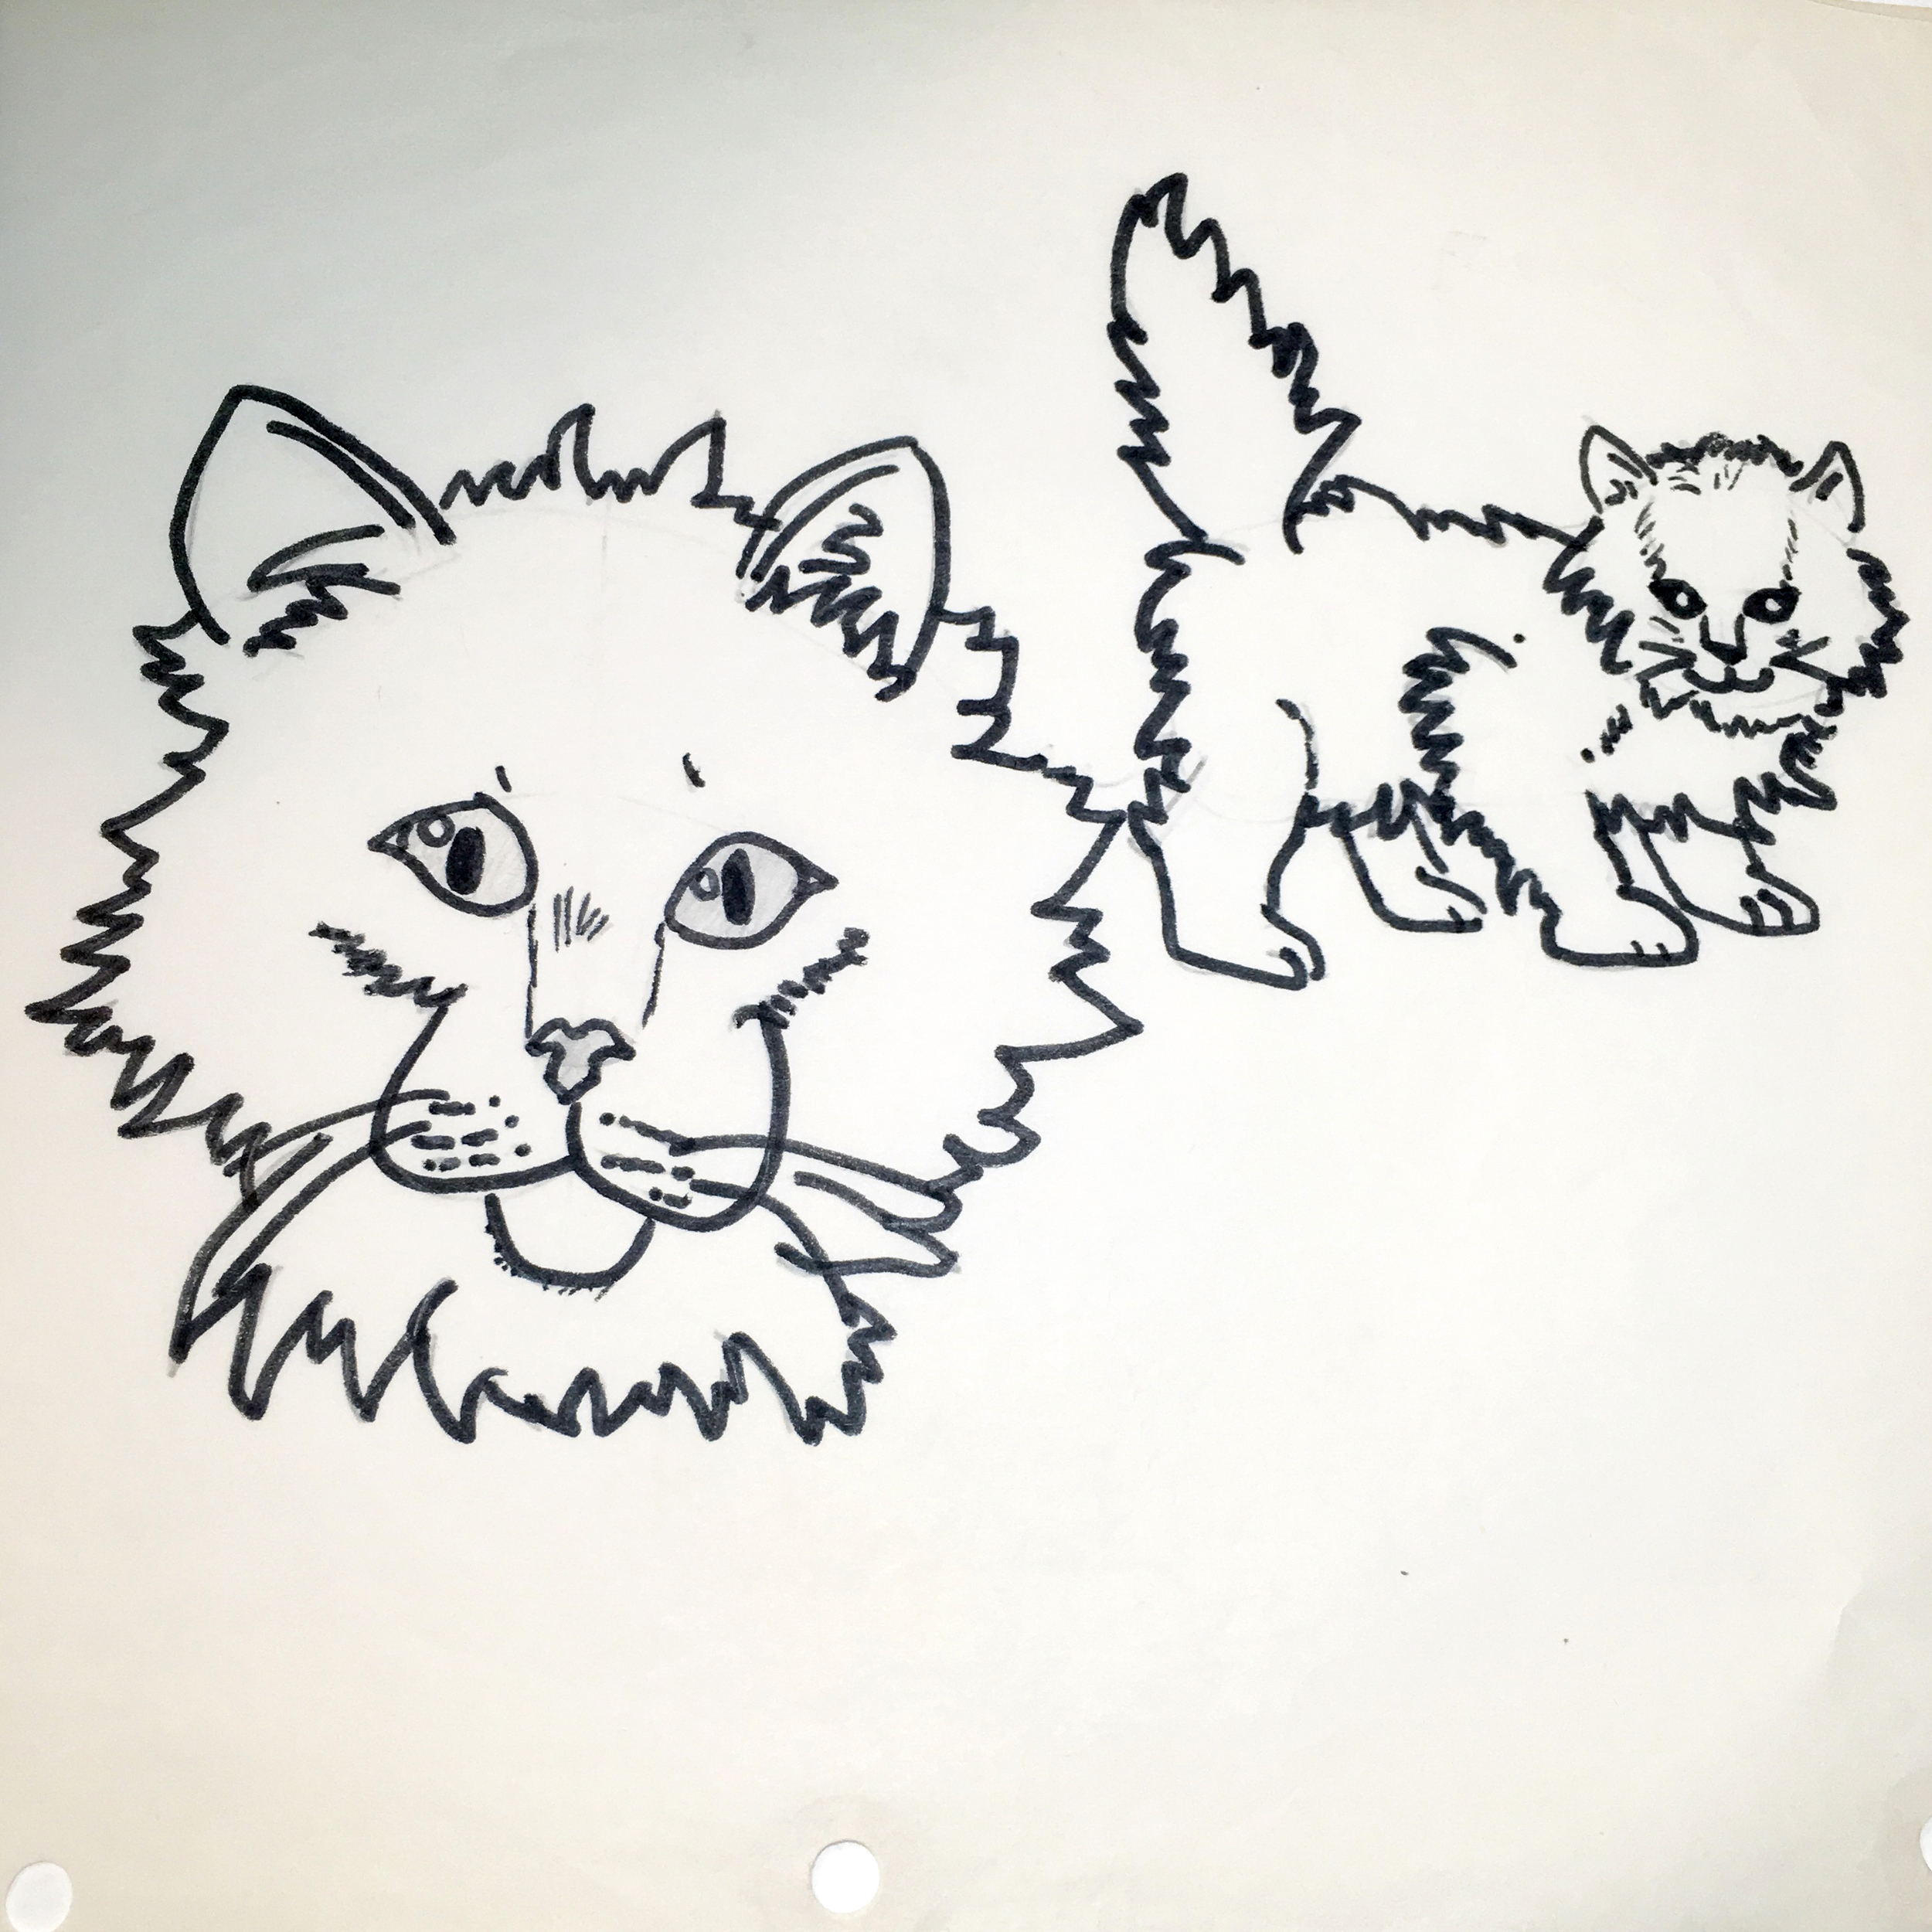 Throwback Thursday- 6th grade drawing of cats